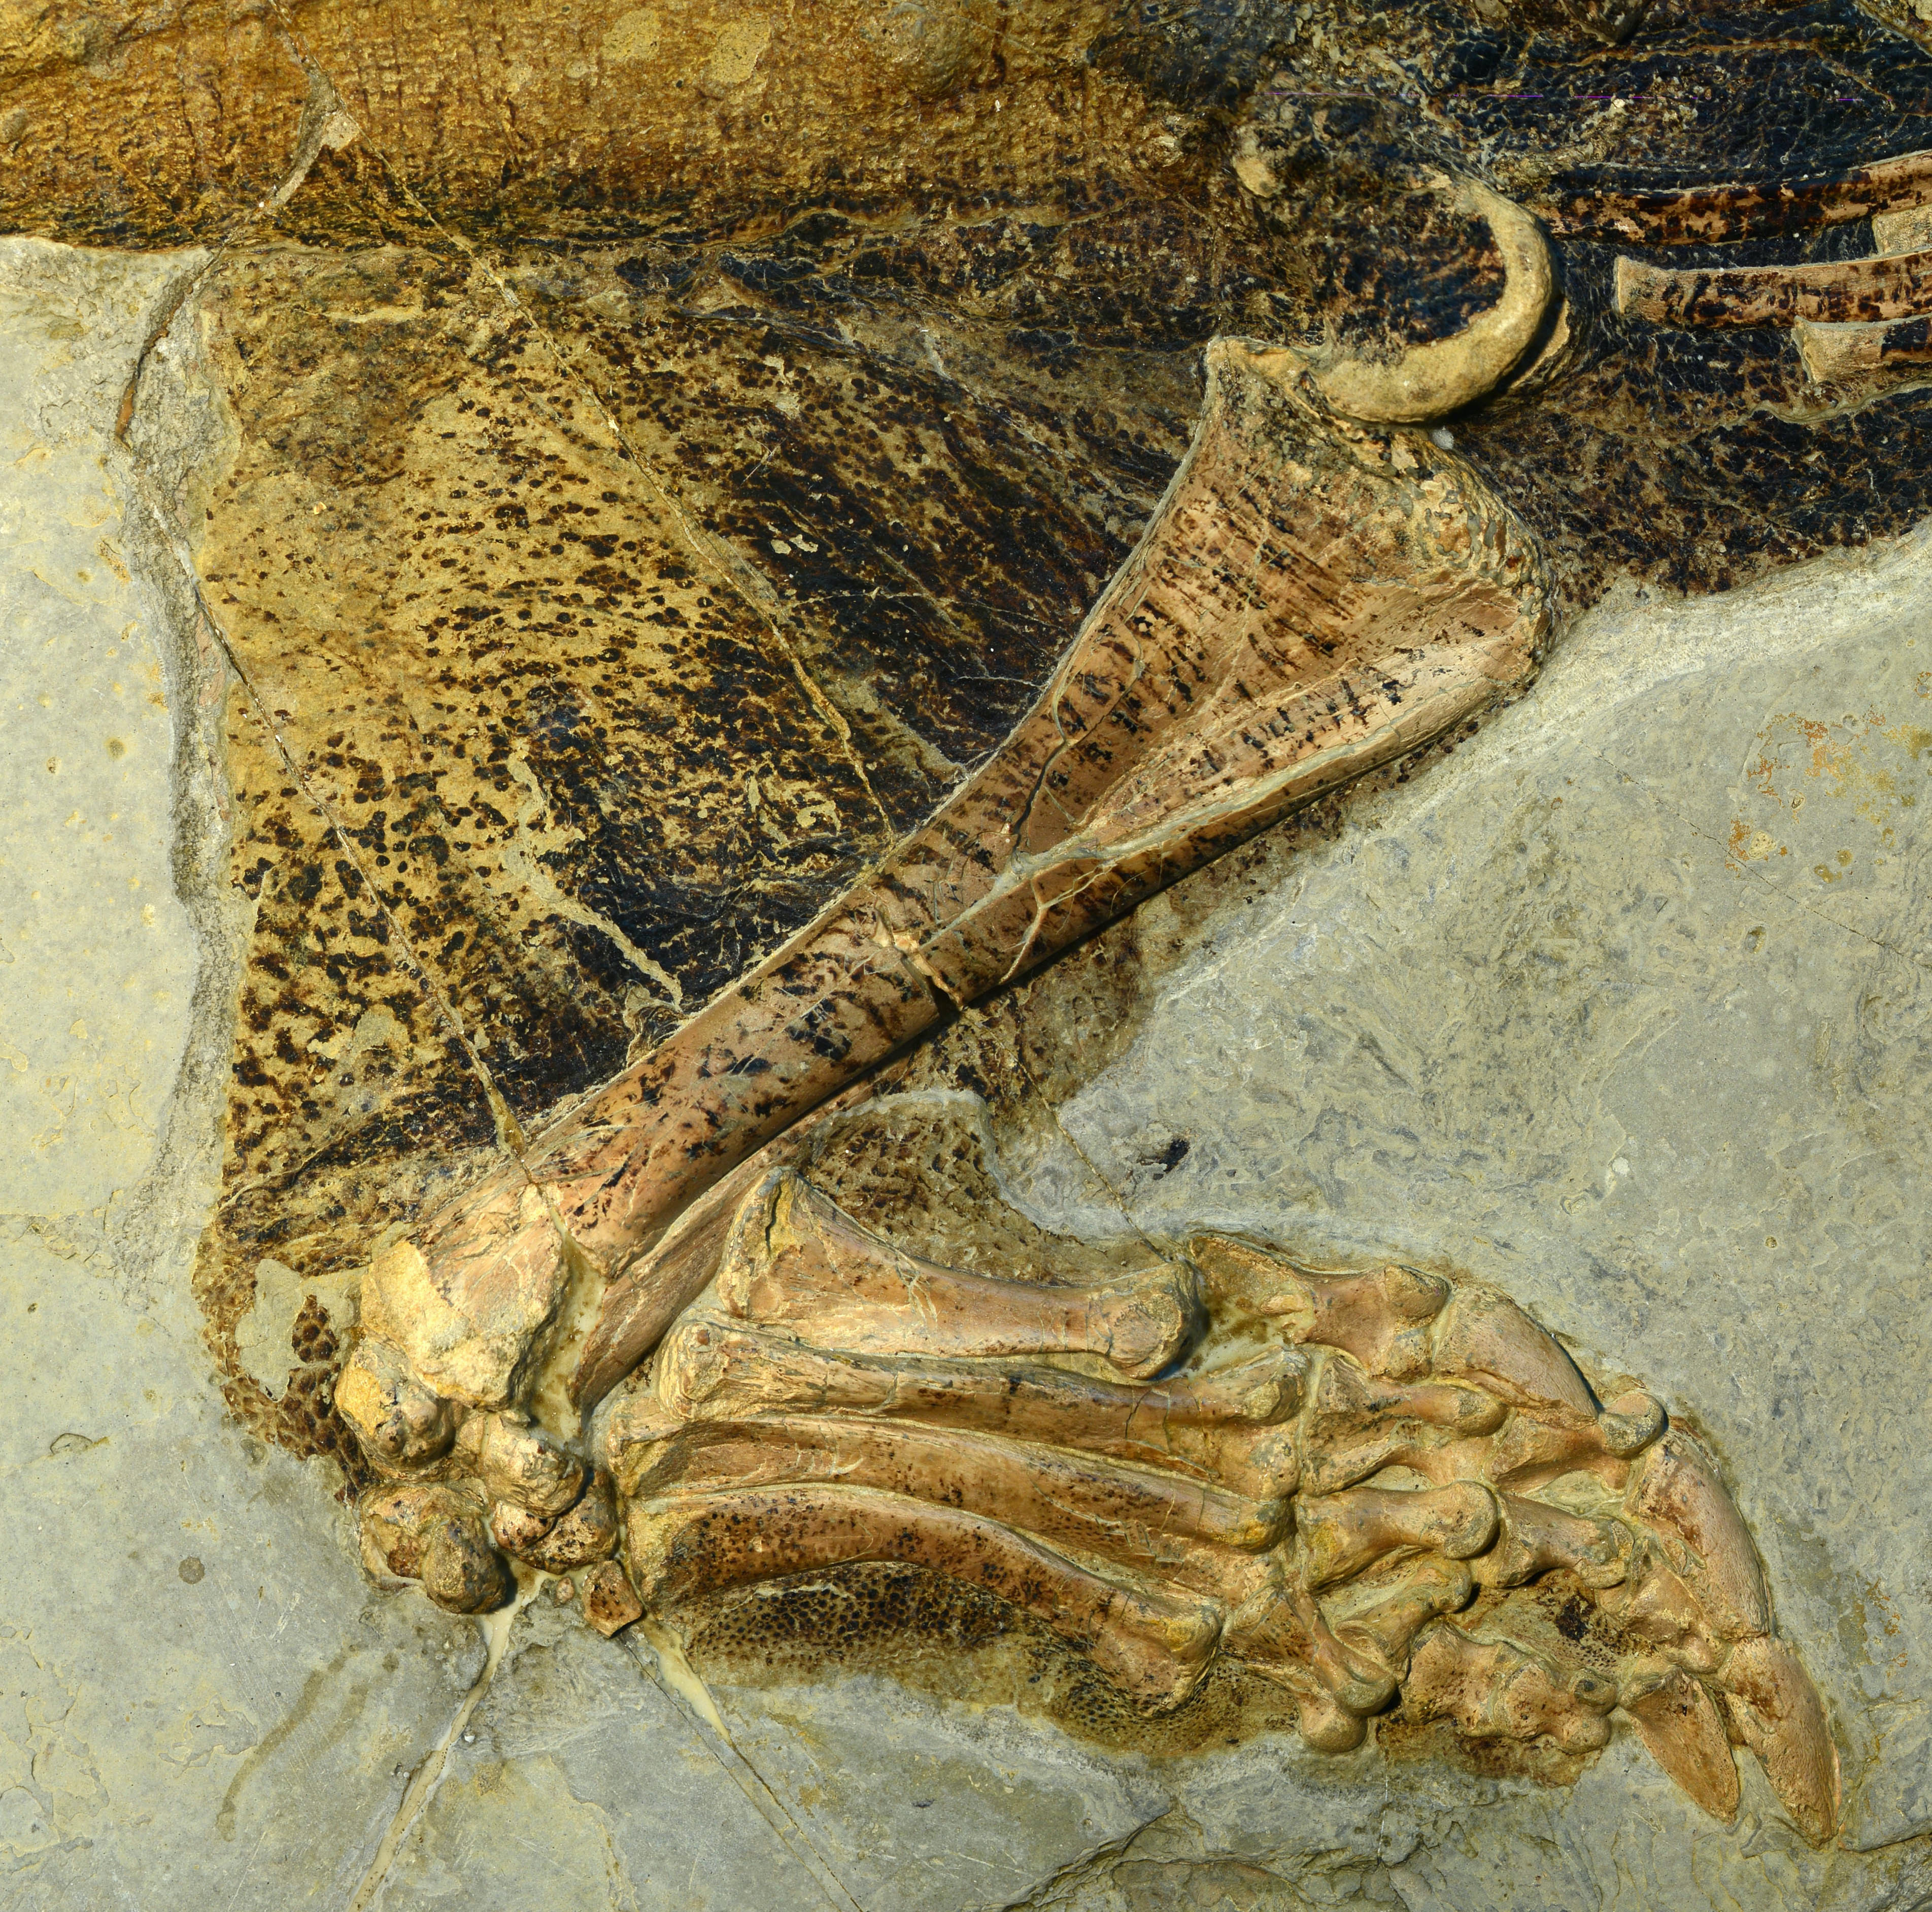 The detail of skin preservation on this 'Psittacosaurus' hindlimb fossil is spectacular.